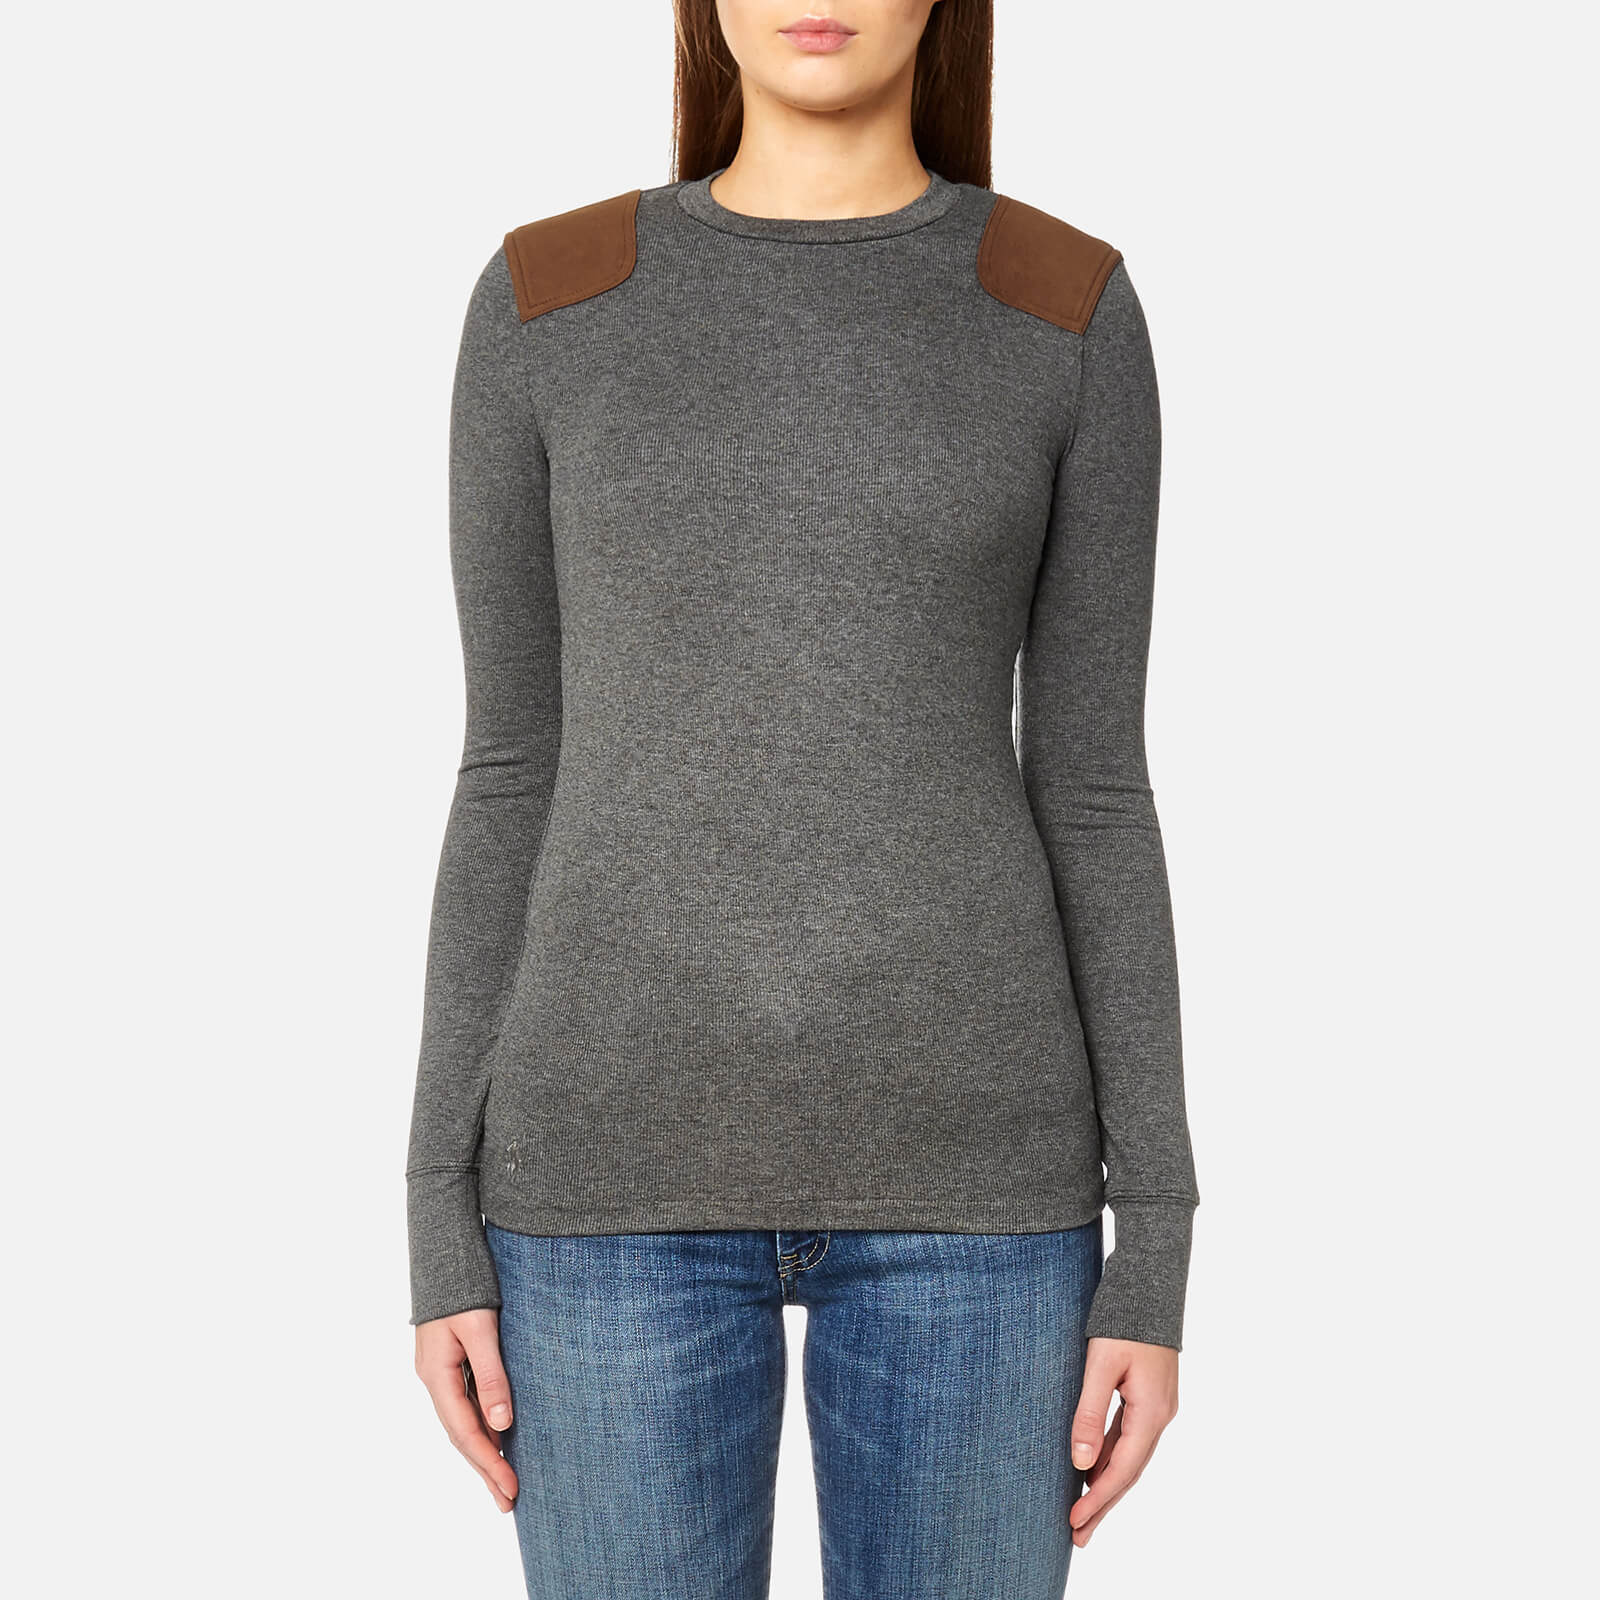 36a35c47e6d18 Polo Ralph Lauren Women s Long Sleeve Crew Neck Top with Suede Trim - Grey  - Free UK Delivery over £50